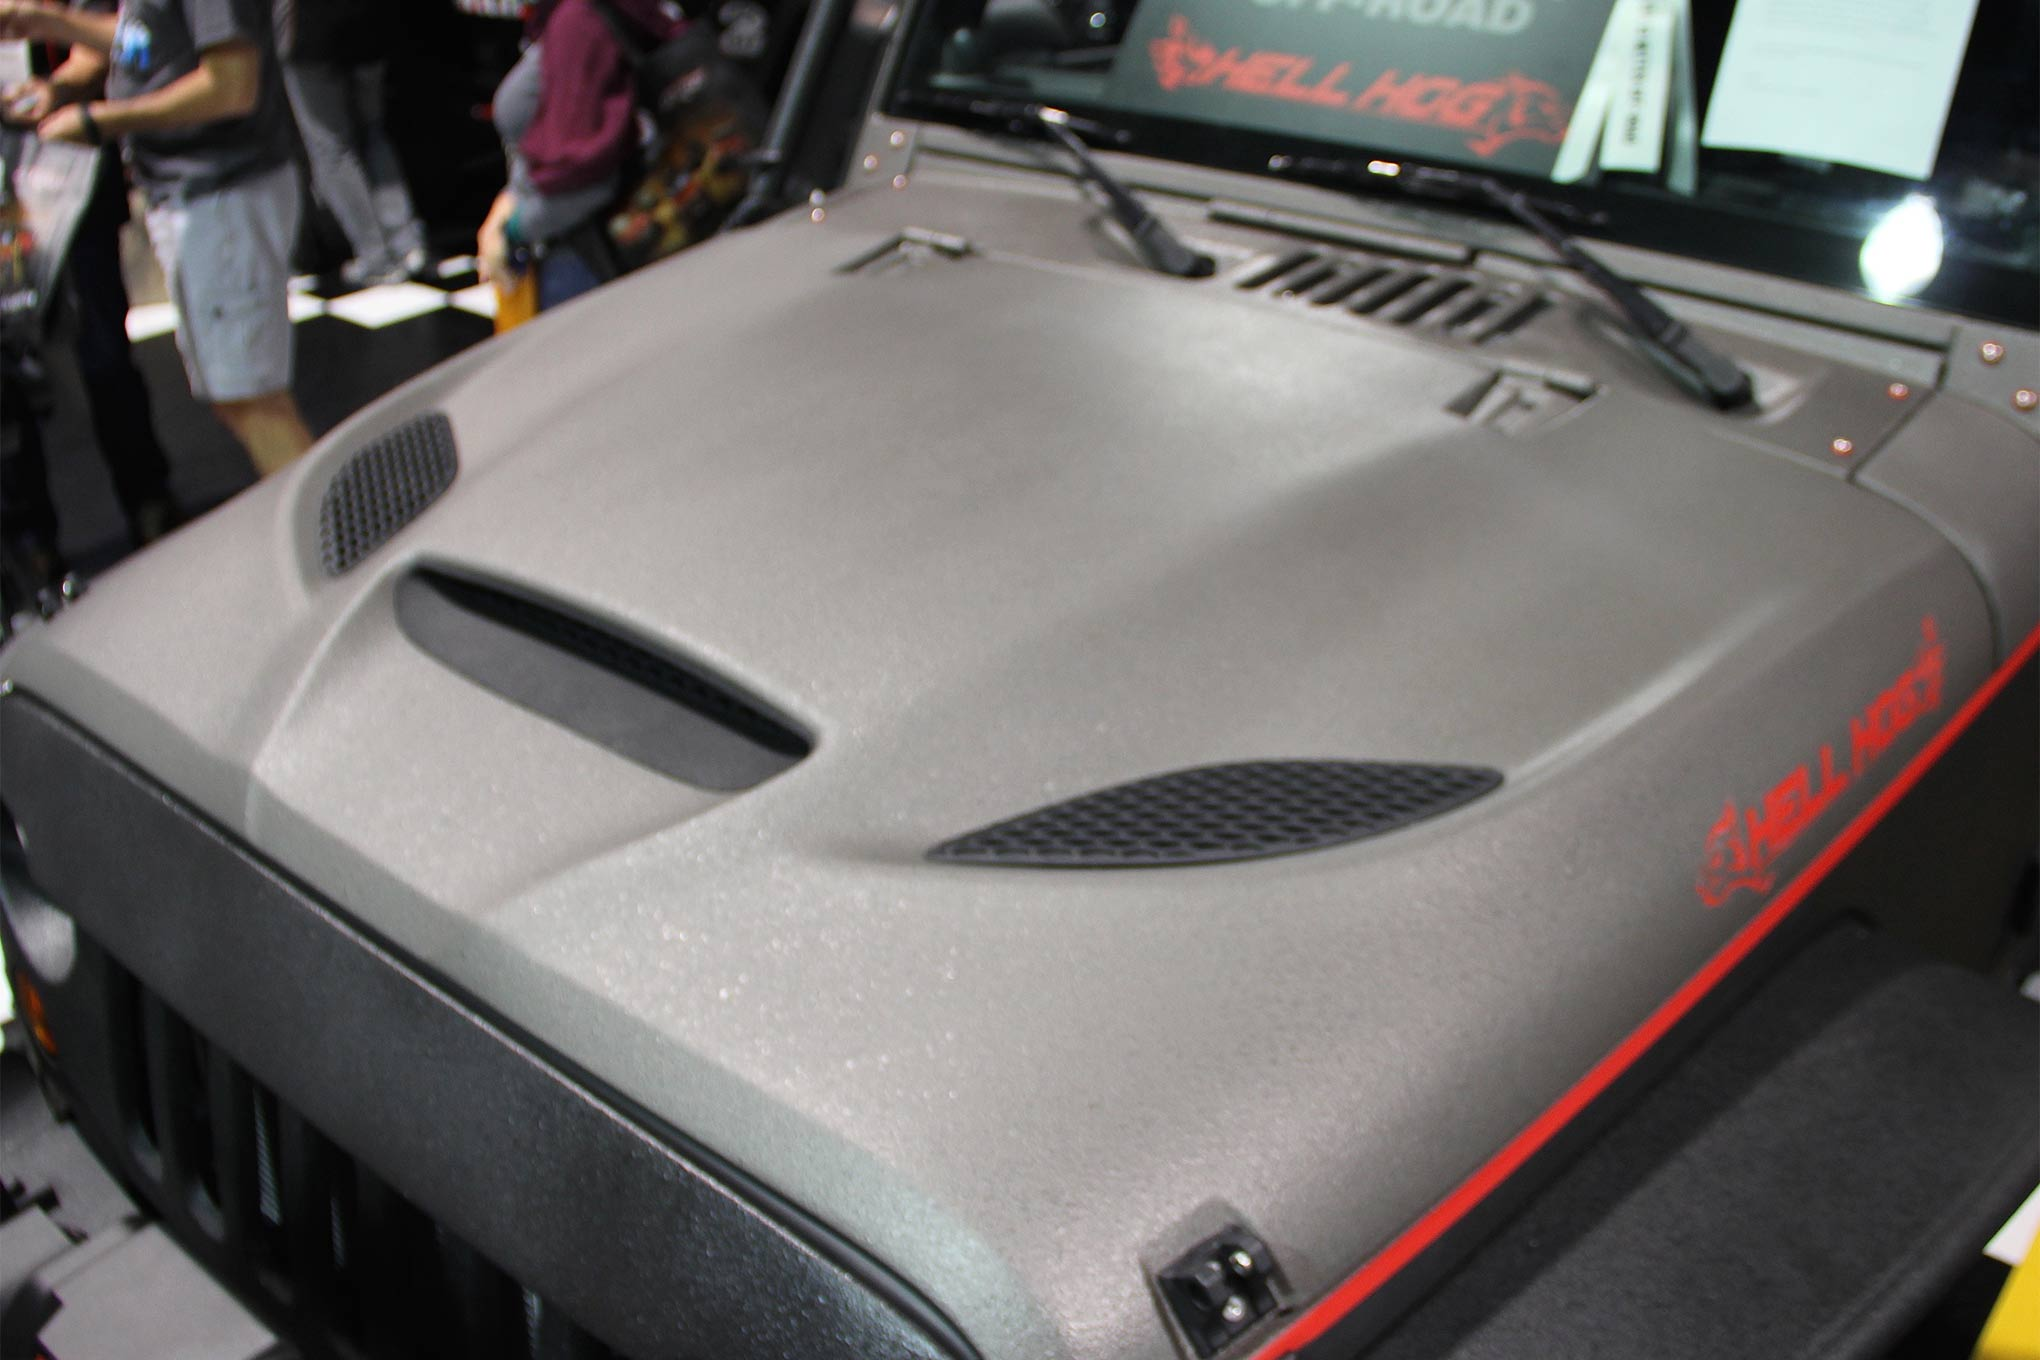 To make for a more compelling presentation and to telegraph the Hellcat connection, Wild Boar incorporated the Hellcat hoodscoop arrangement to the stock Wrangler hood with surprisingly successful results.